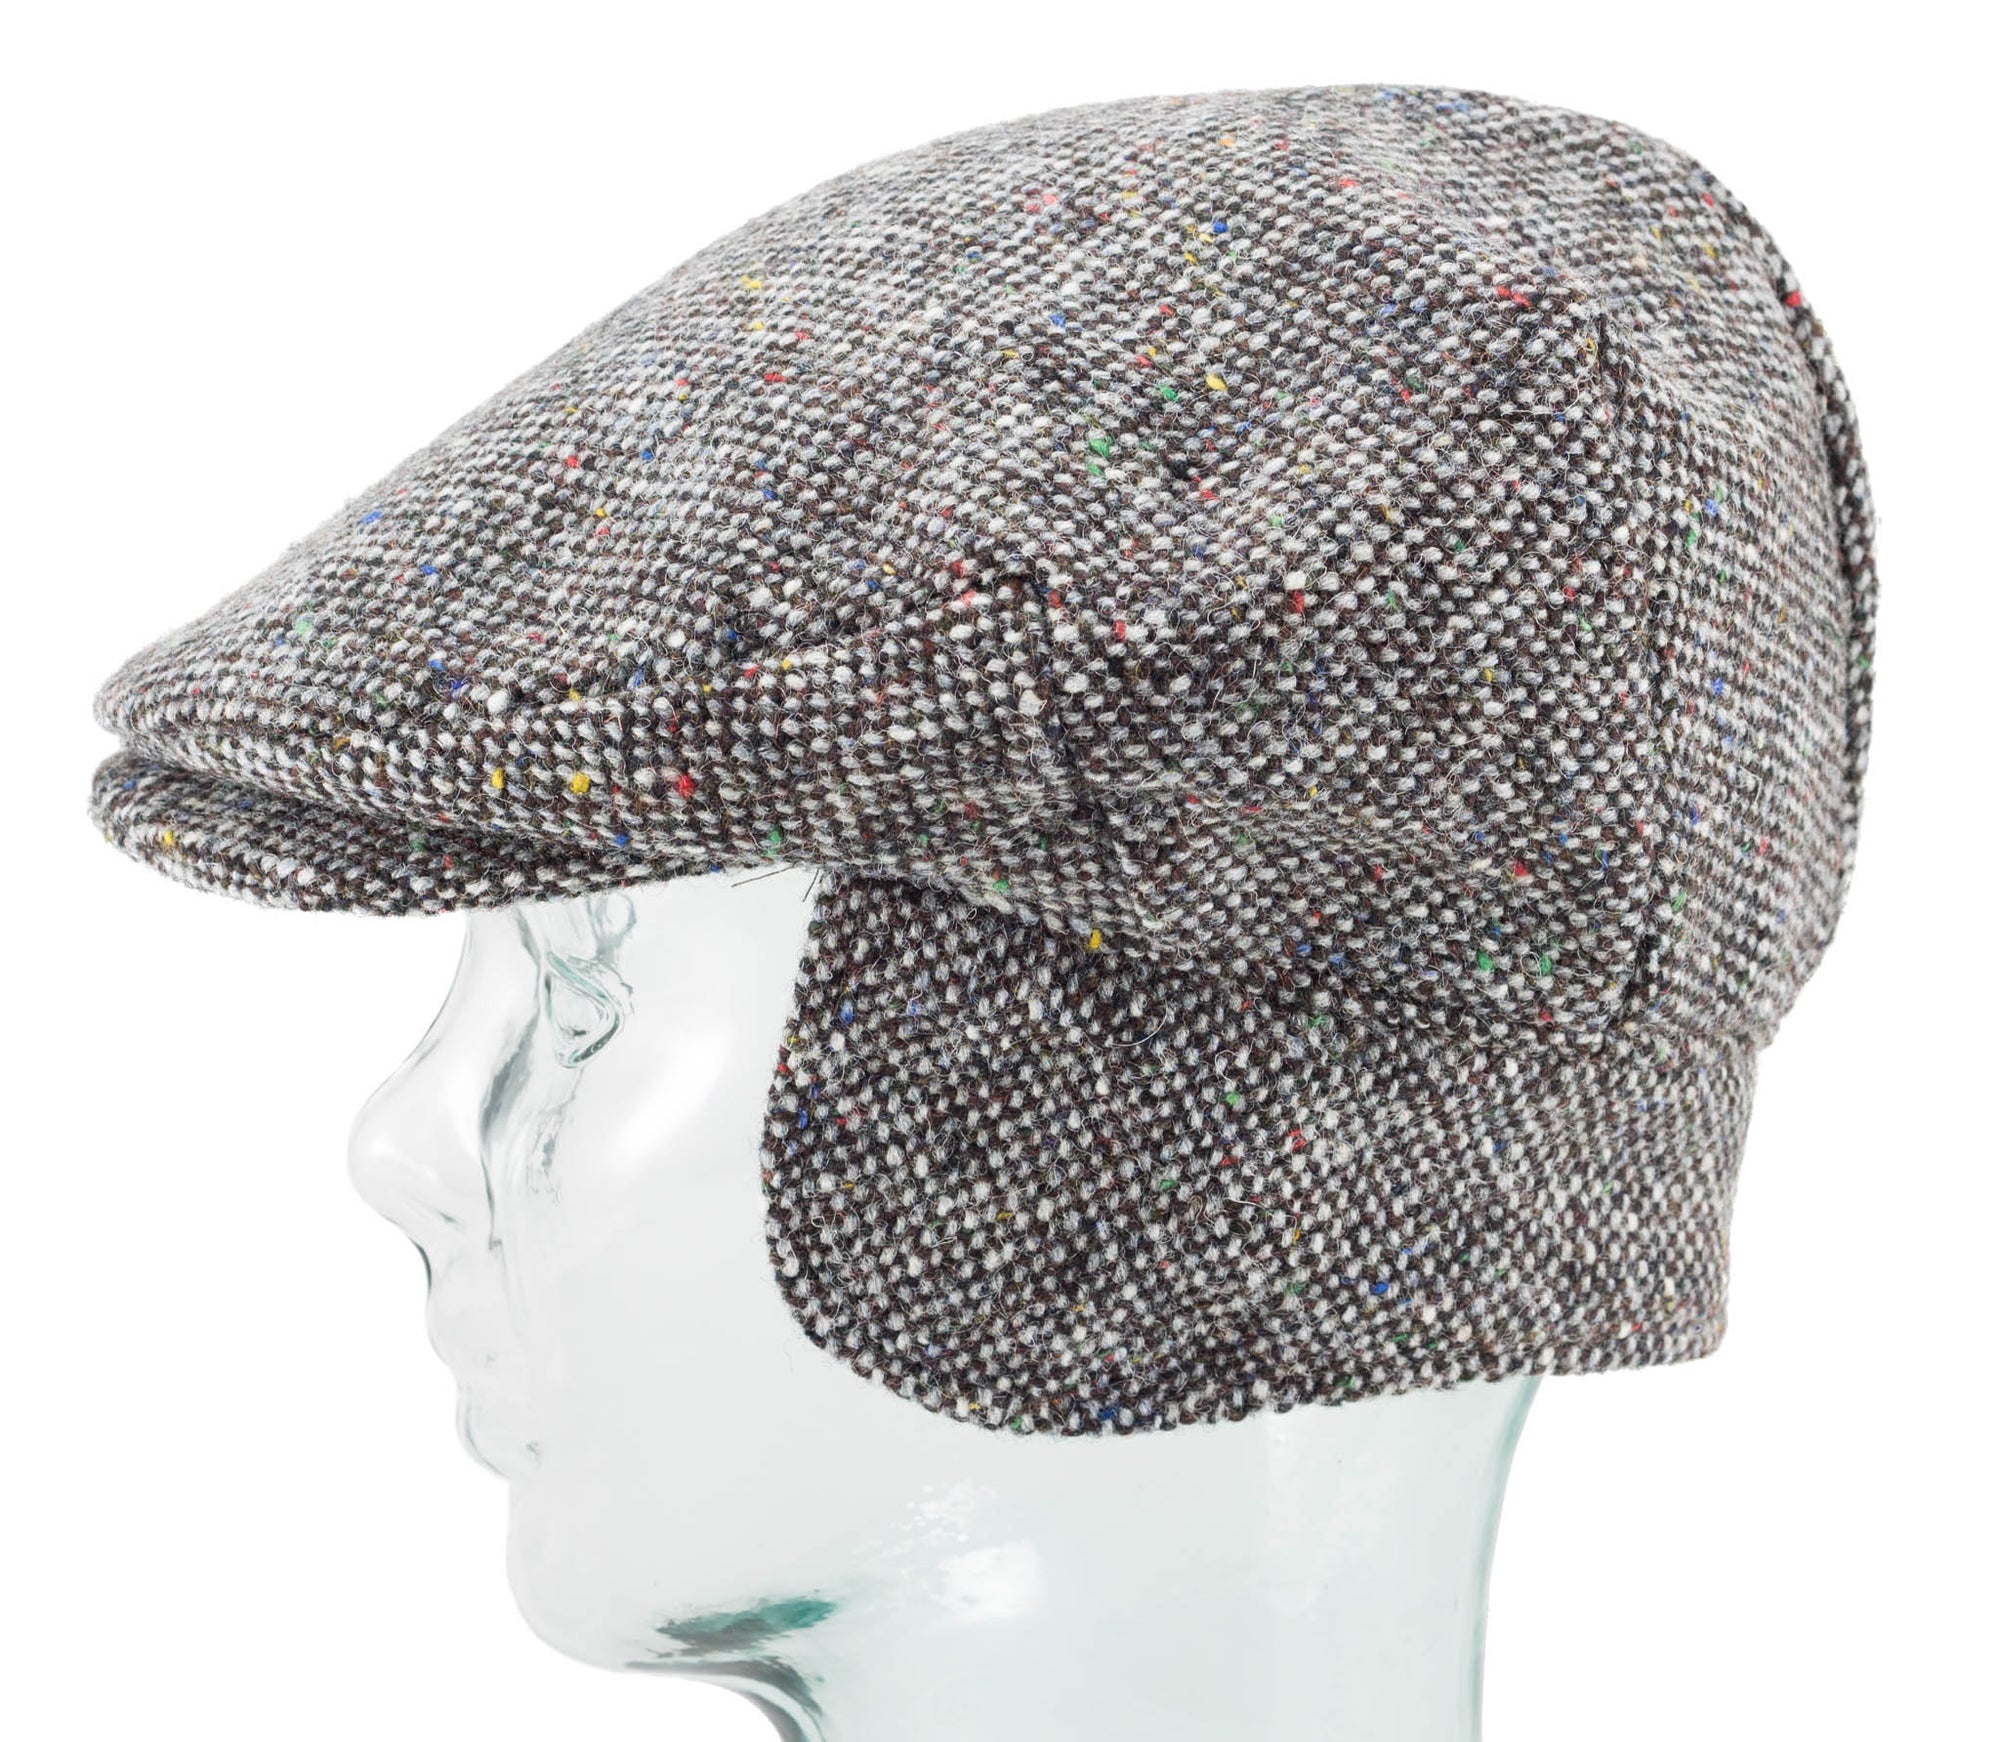 Vintage Style Cap with Earflaps - Grey Tweed